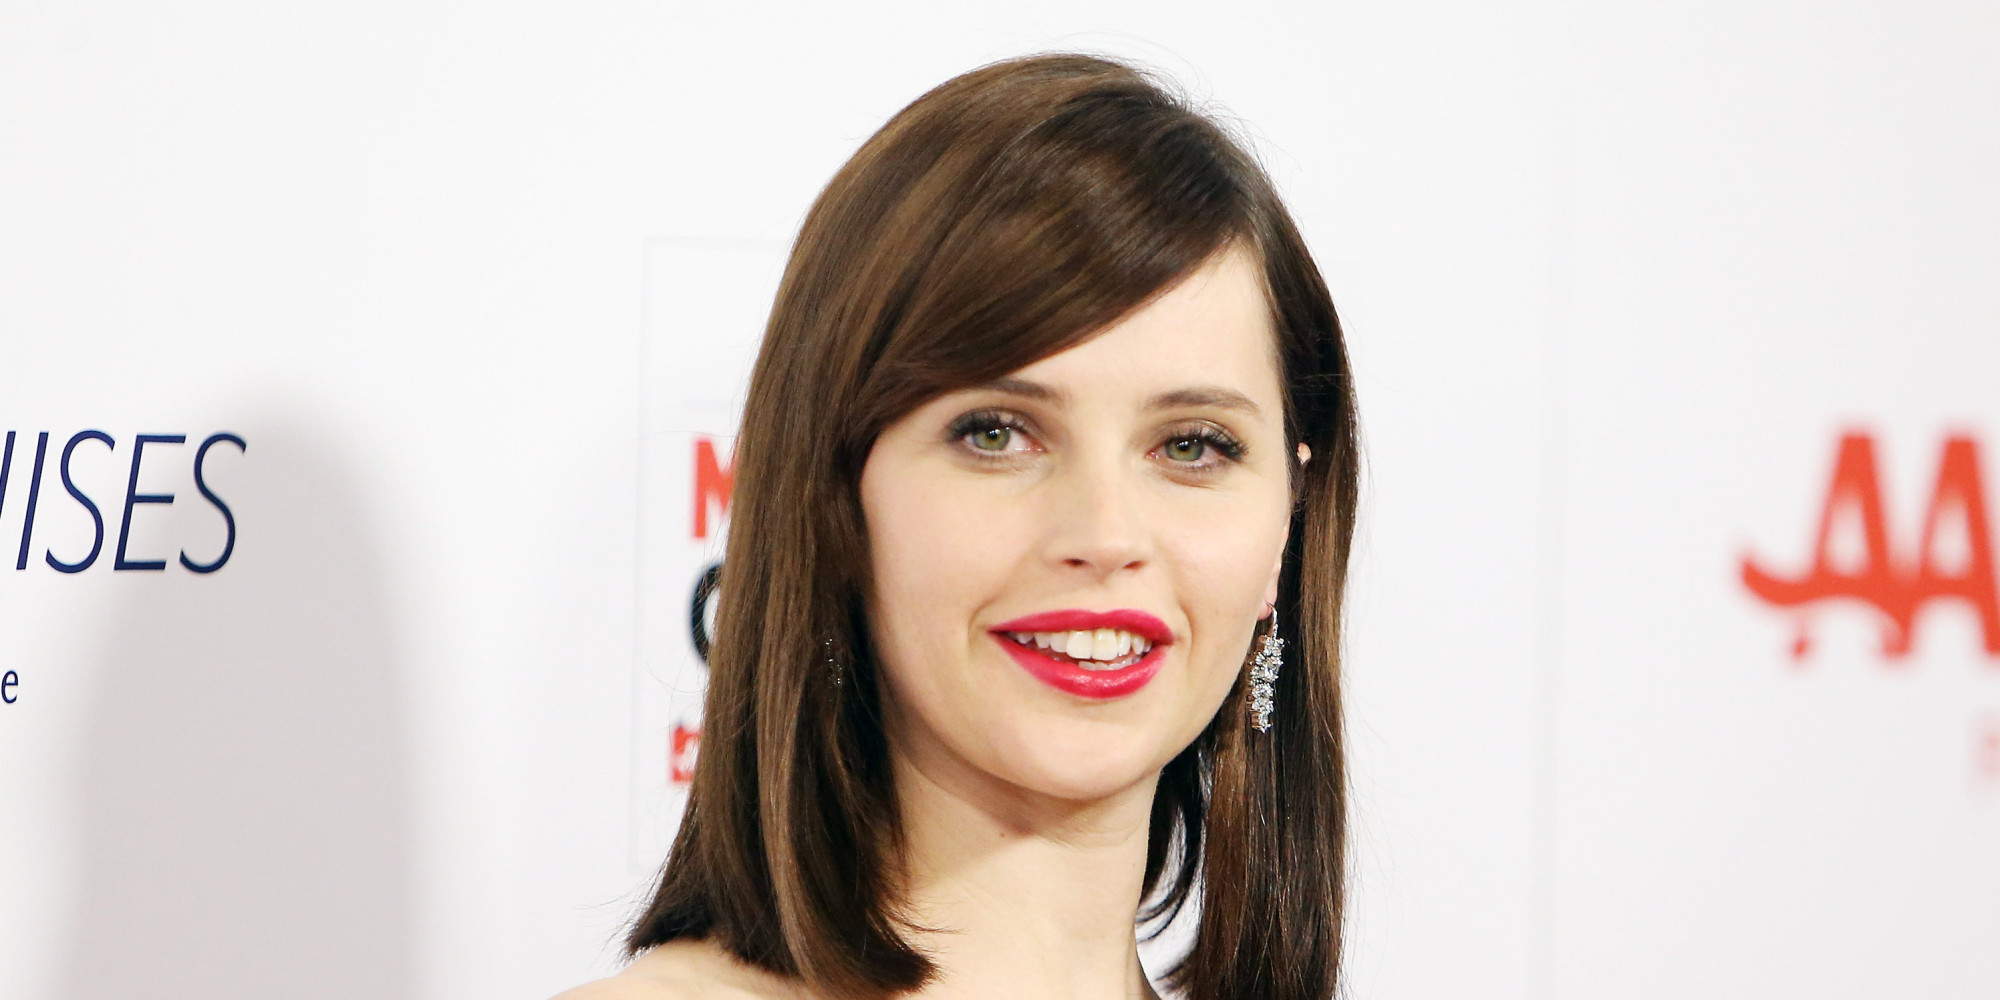 felicity jones wikifelicity jones gif, felicity jones rogue one, felicity jones tumblr, felicity jones vk, felicity jones doctor who, felicity jones twitter, felicity jones photoshoot, felicity jones 2017, felicity jones gif hunt, felicity jones gq, felicity jones inferno, felicity jones 2016, felicity jones фото, felicity jones and diego luna, felicity jones imdb, felicity jones wallpaper, felicity jones инстаграм, felicity jones snl, felicity jones wiki, felicity jones site